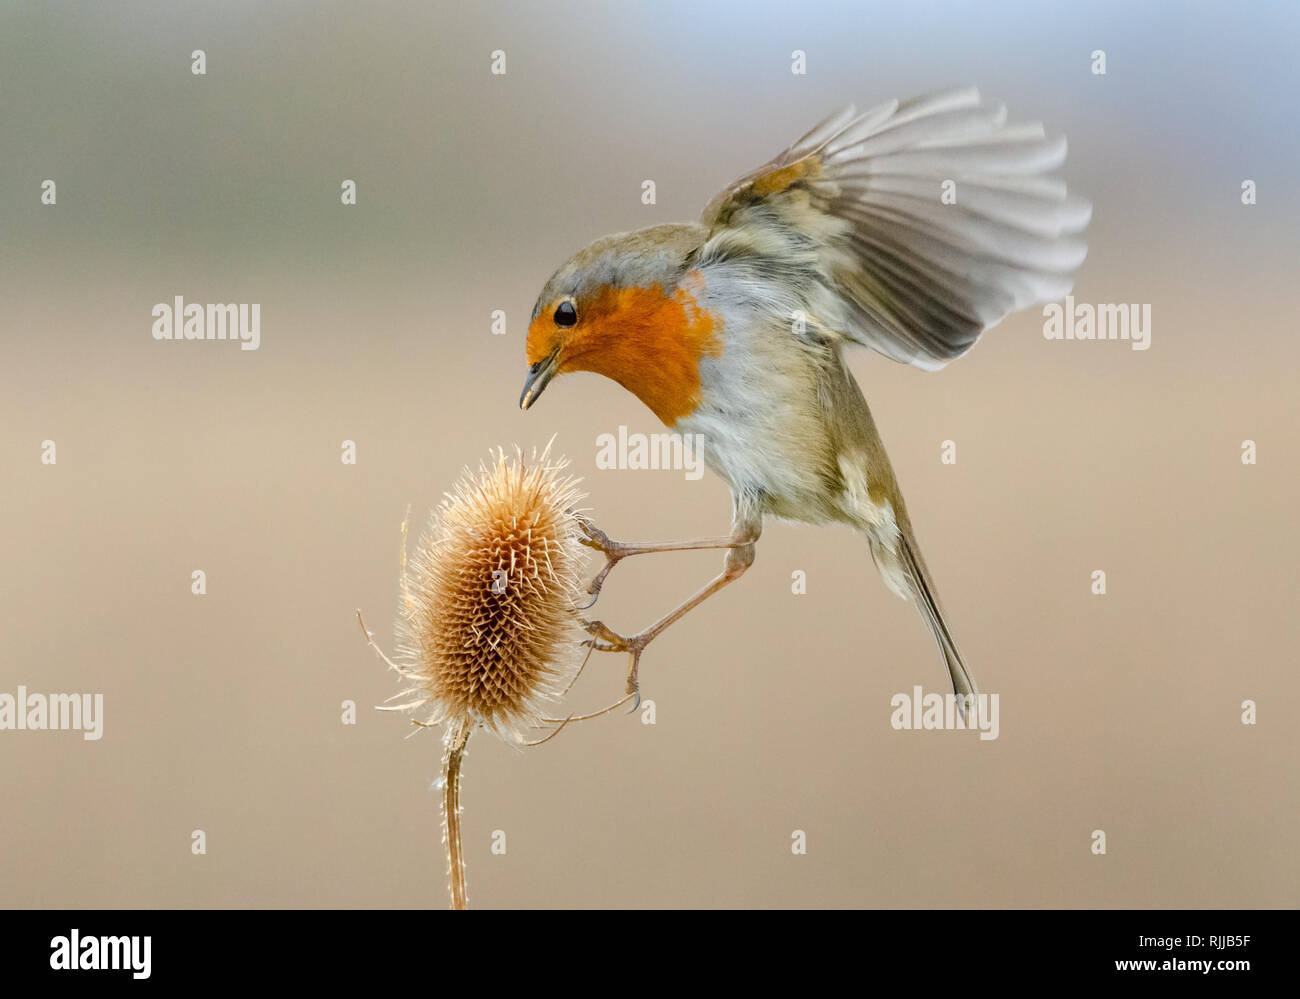 A hovering Robin - Stock Image